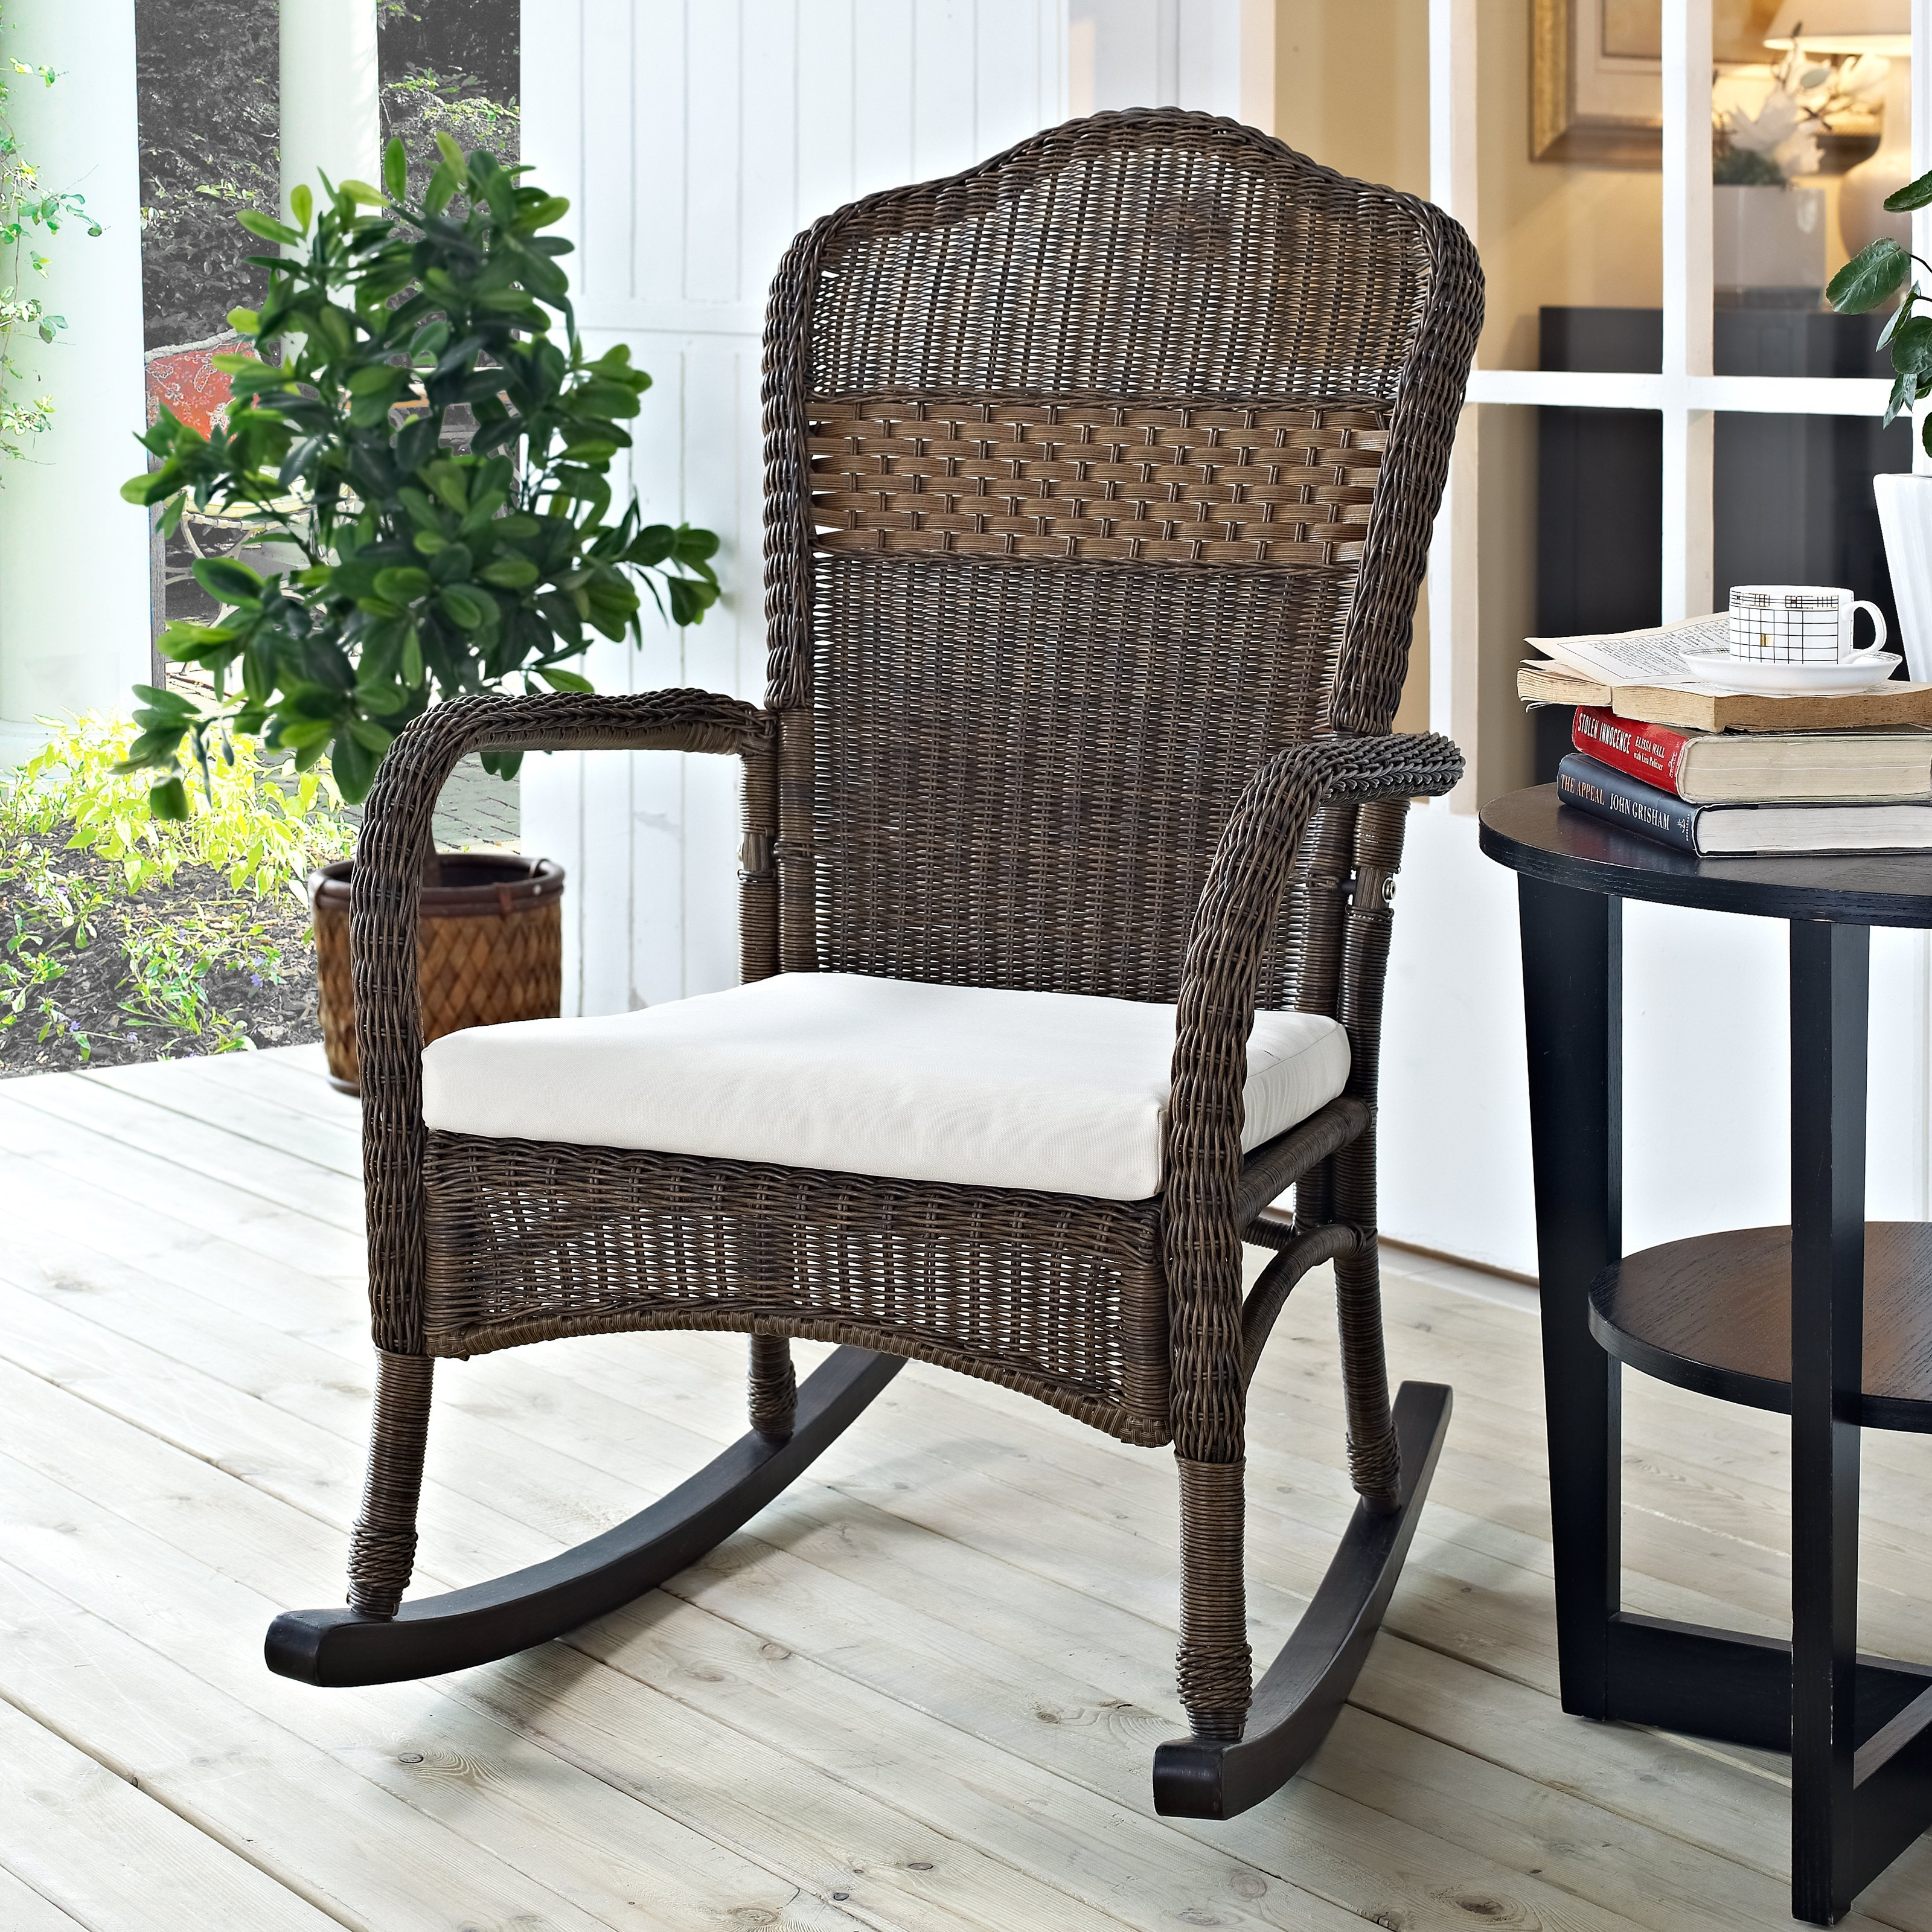 Chairs: Fancy Outdoor Rocking Chair For Your Outdoor Space For Patio Furniture Rocking Benches (#5 of 15)